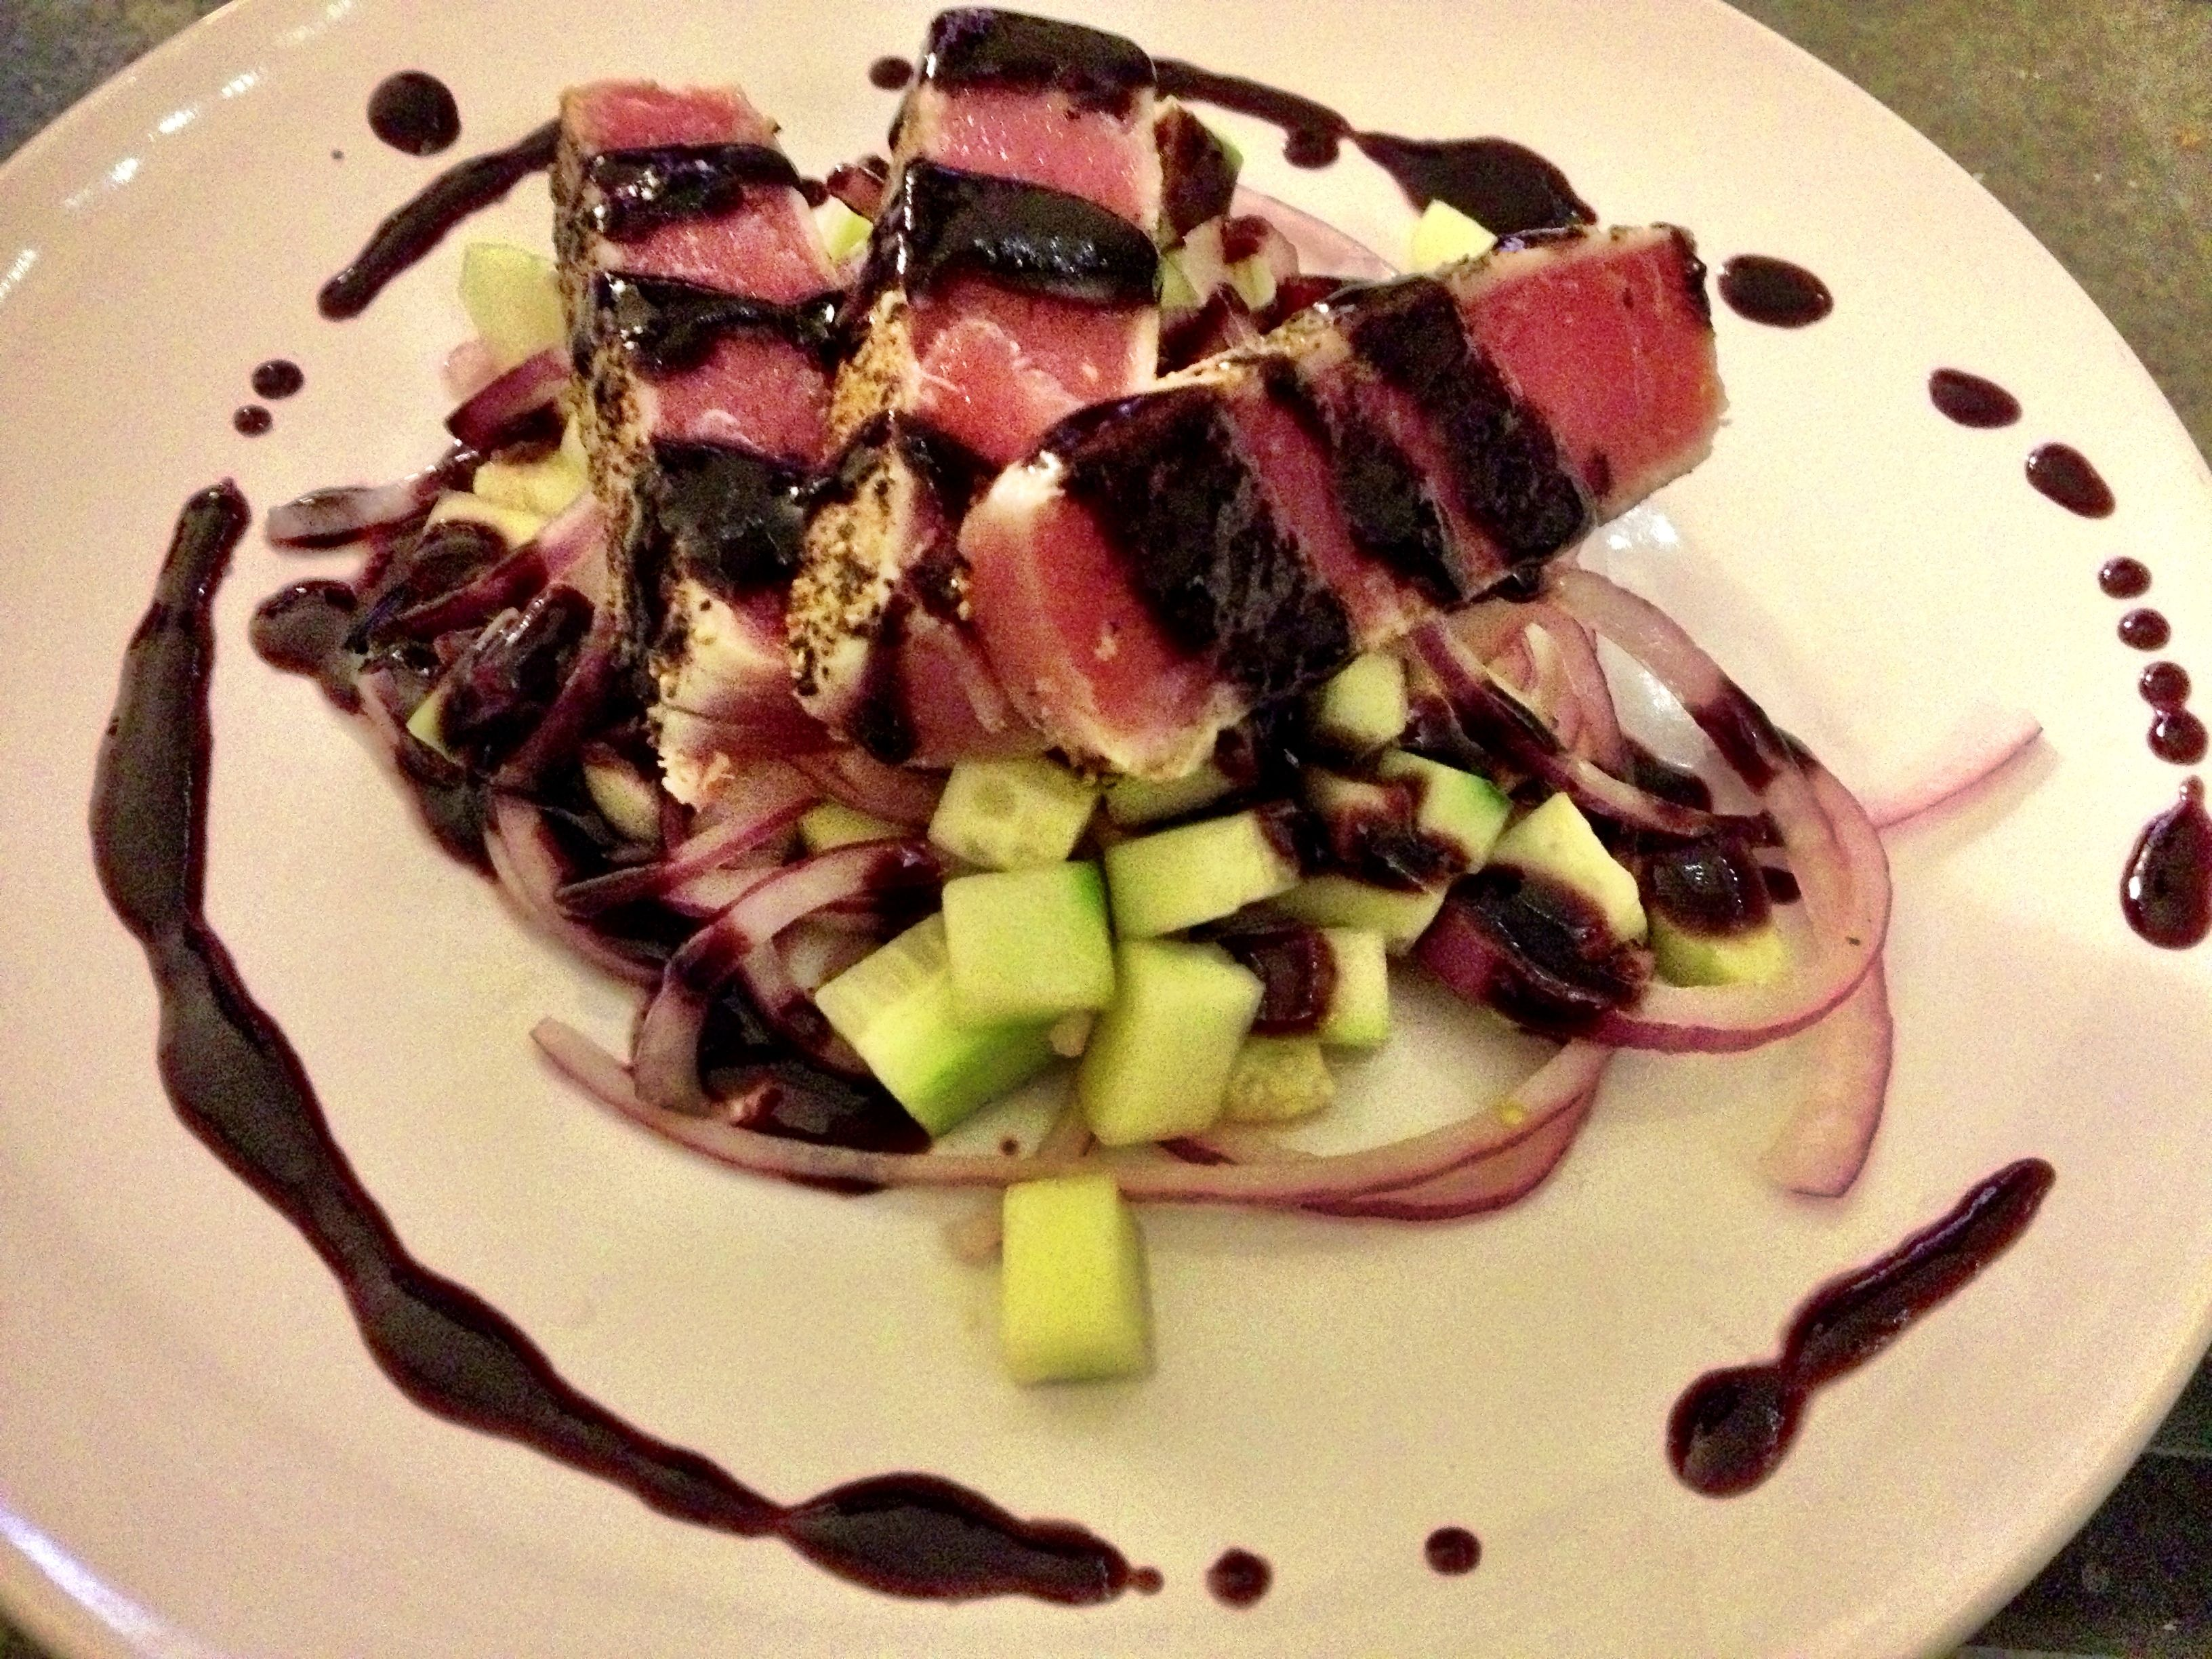 Black pepper crusted seared ahi tuna with a cucumber/red onion salad tossed in a red wine vinegrette. Topped with a balsamic blueberry reduction.